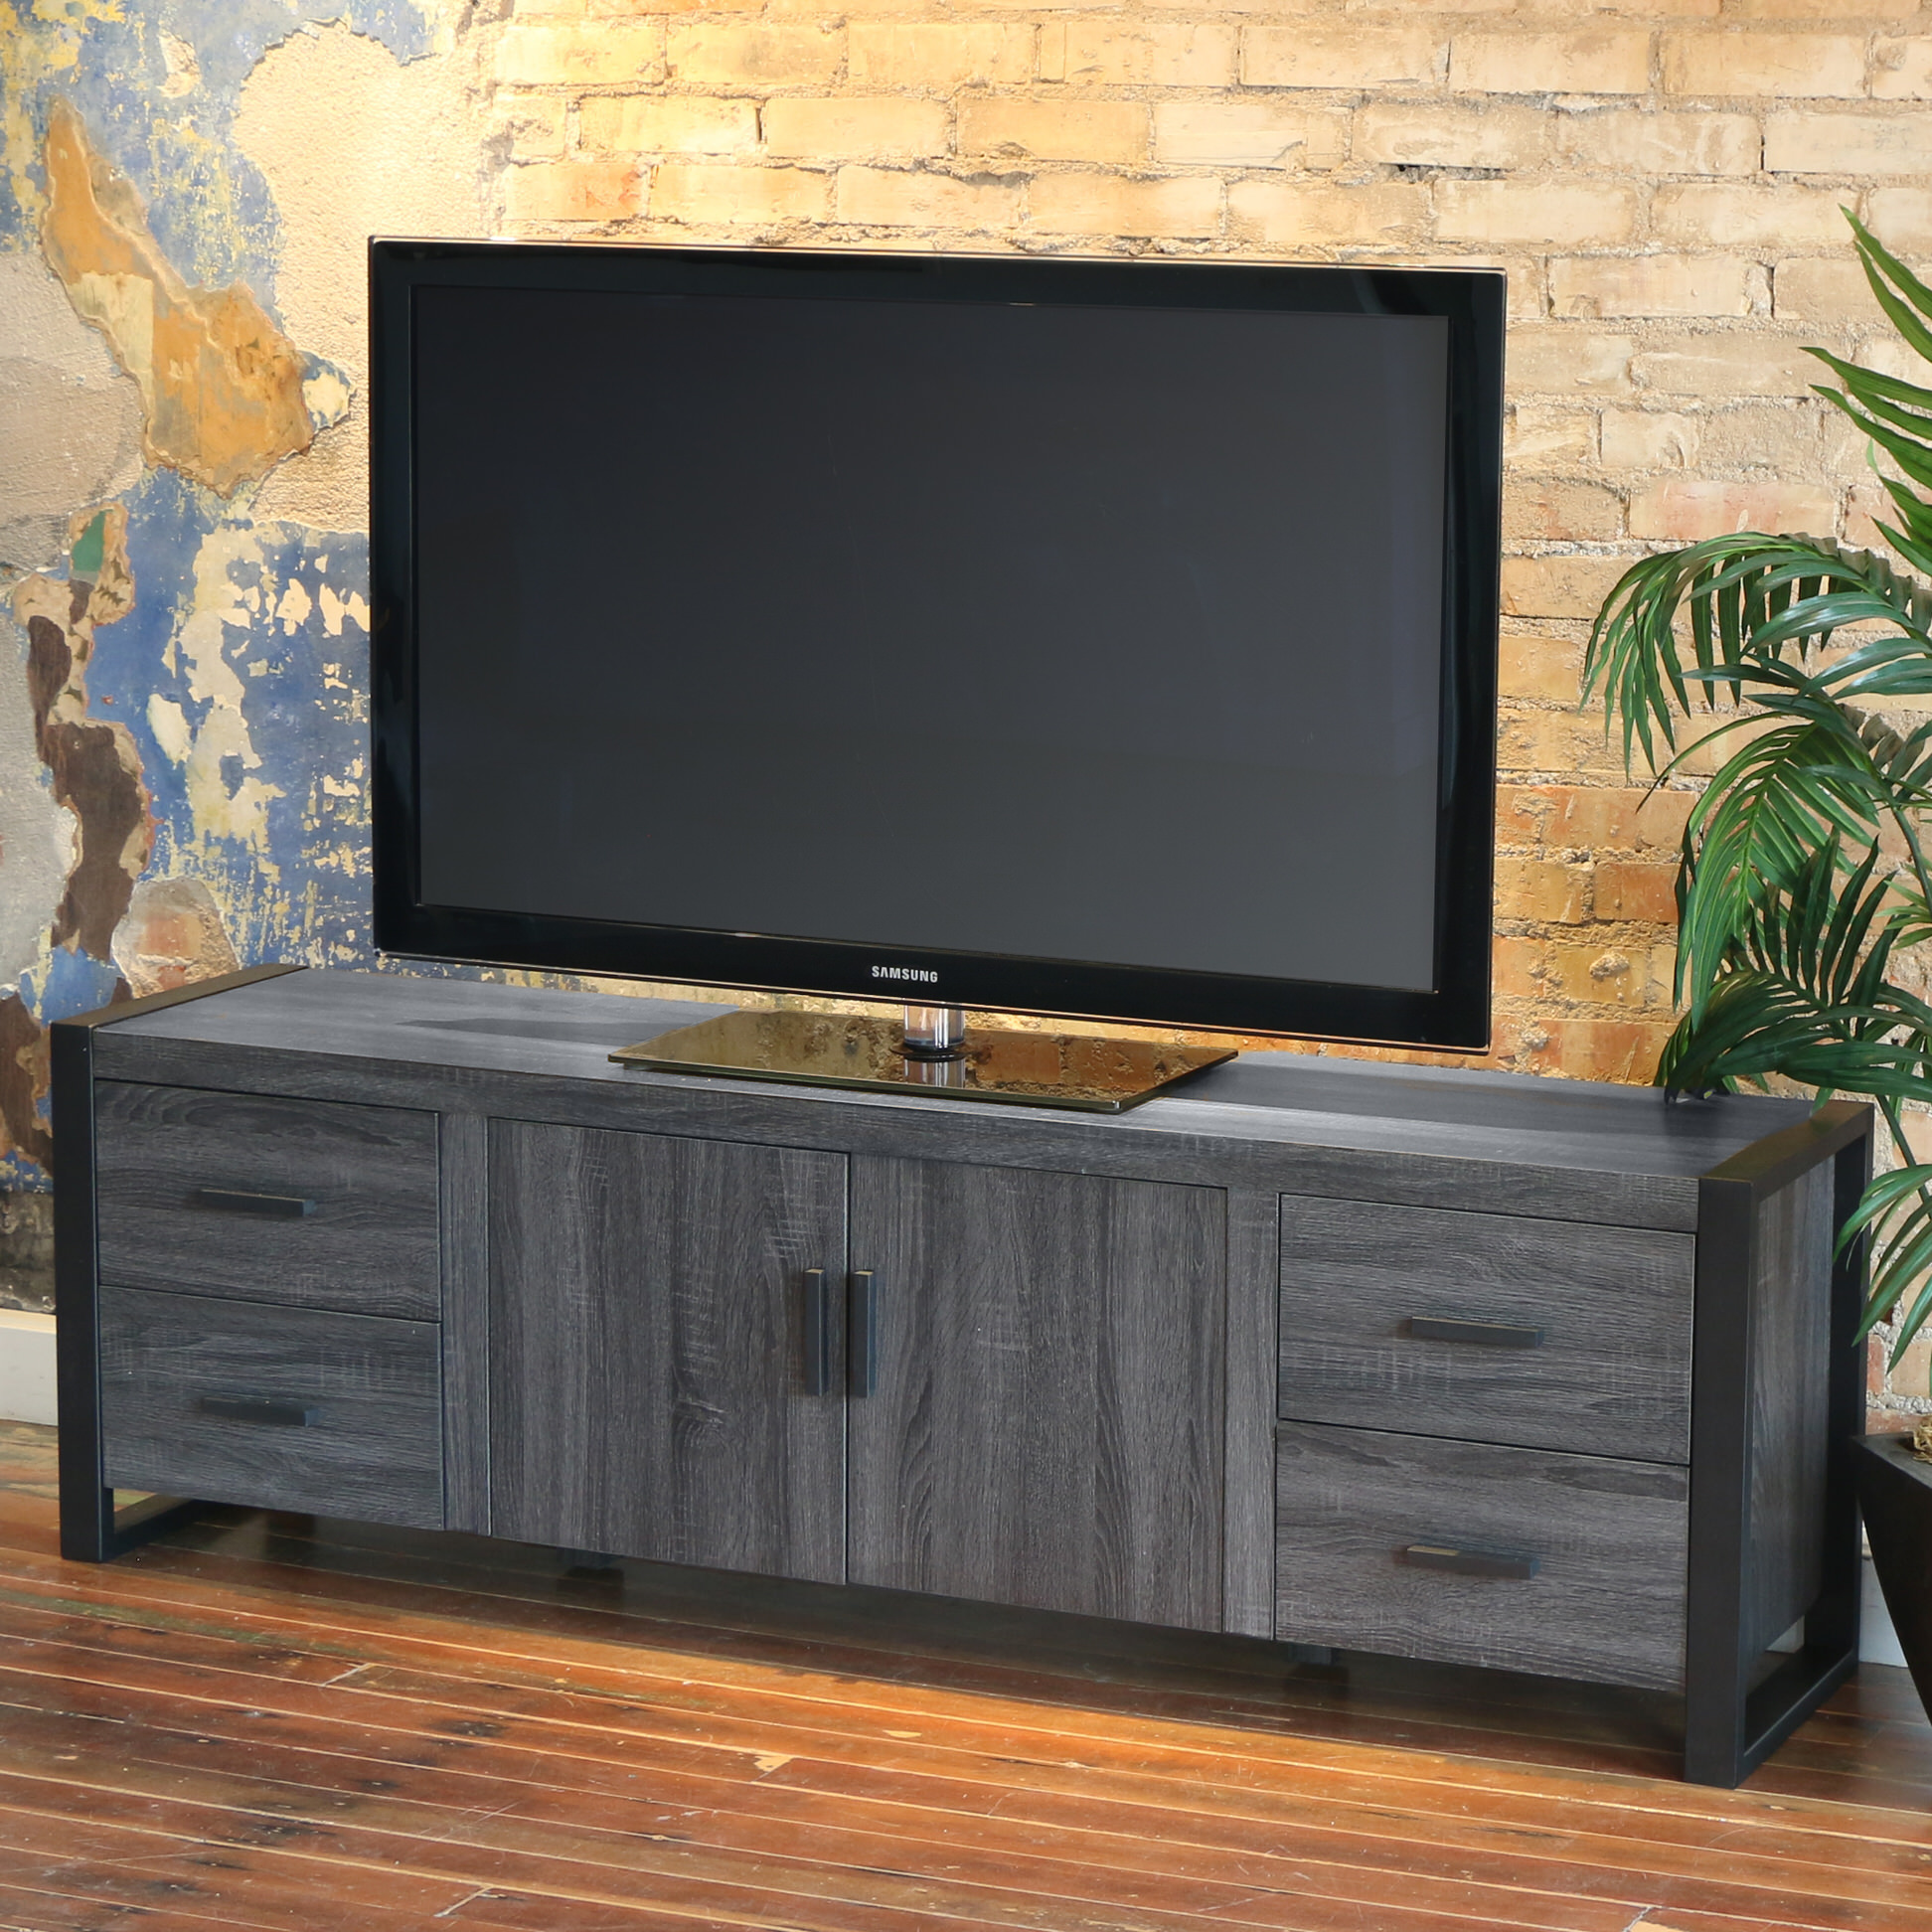 Urban Blend 70 Inch TV Stand CharcoalBlack By Walker Edison